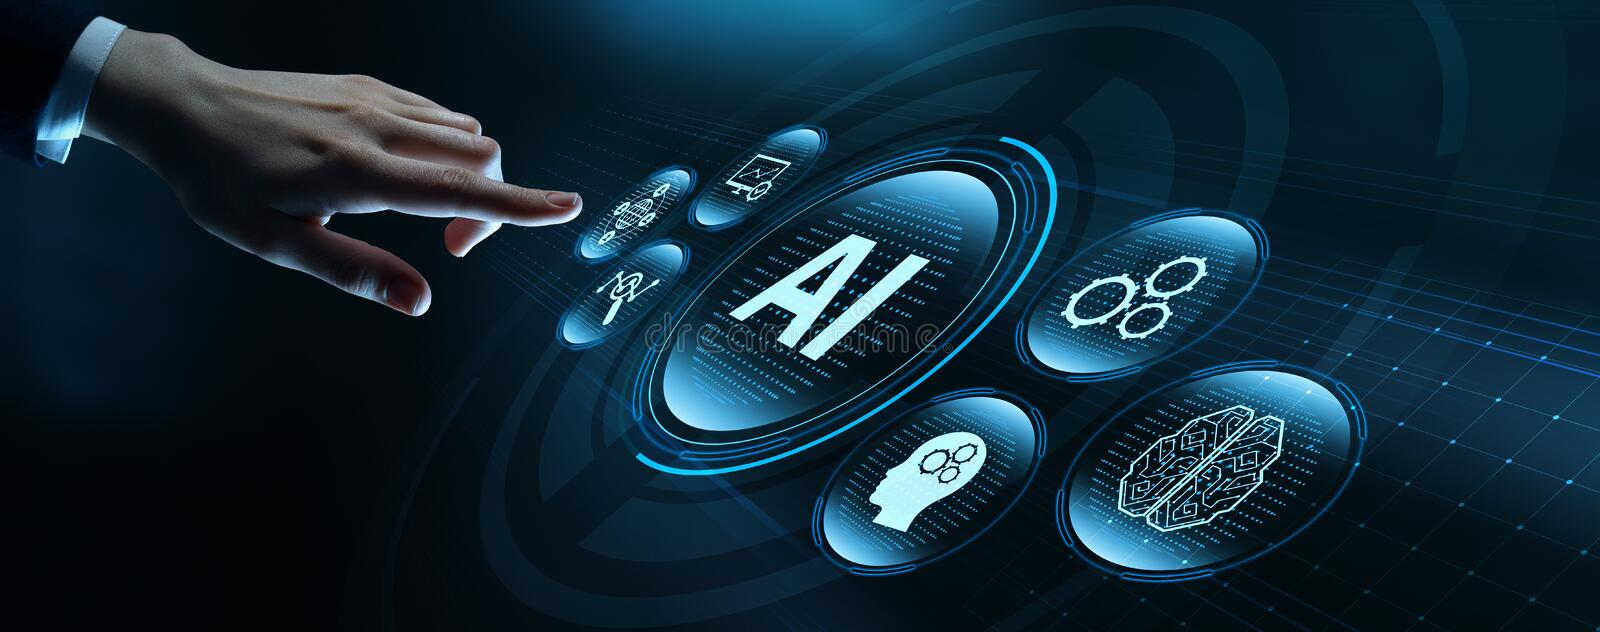 Artificial intelligence Machine Learning Business Technology Concept.  royalty free stock photos